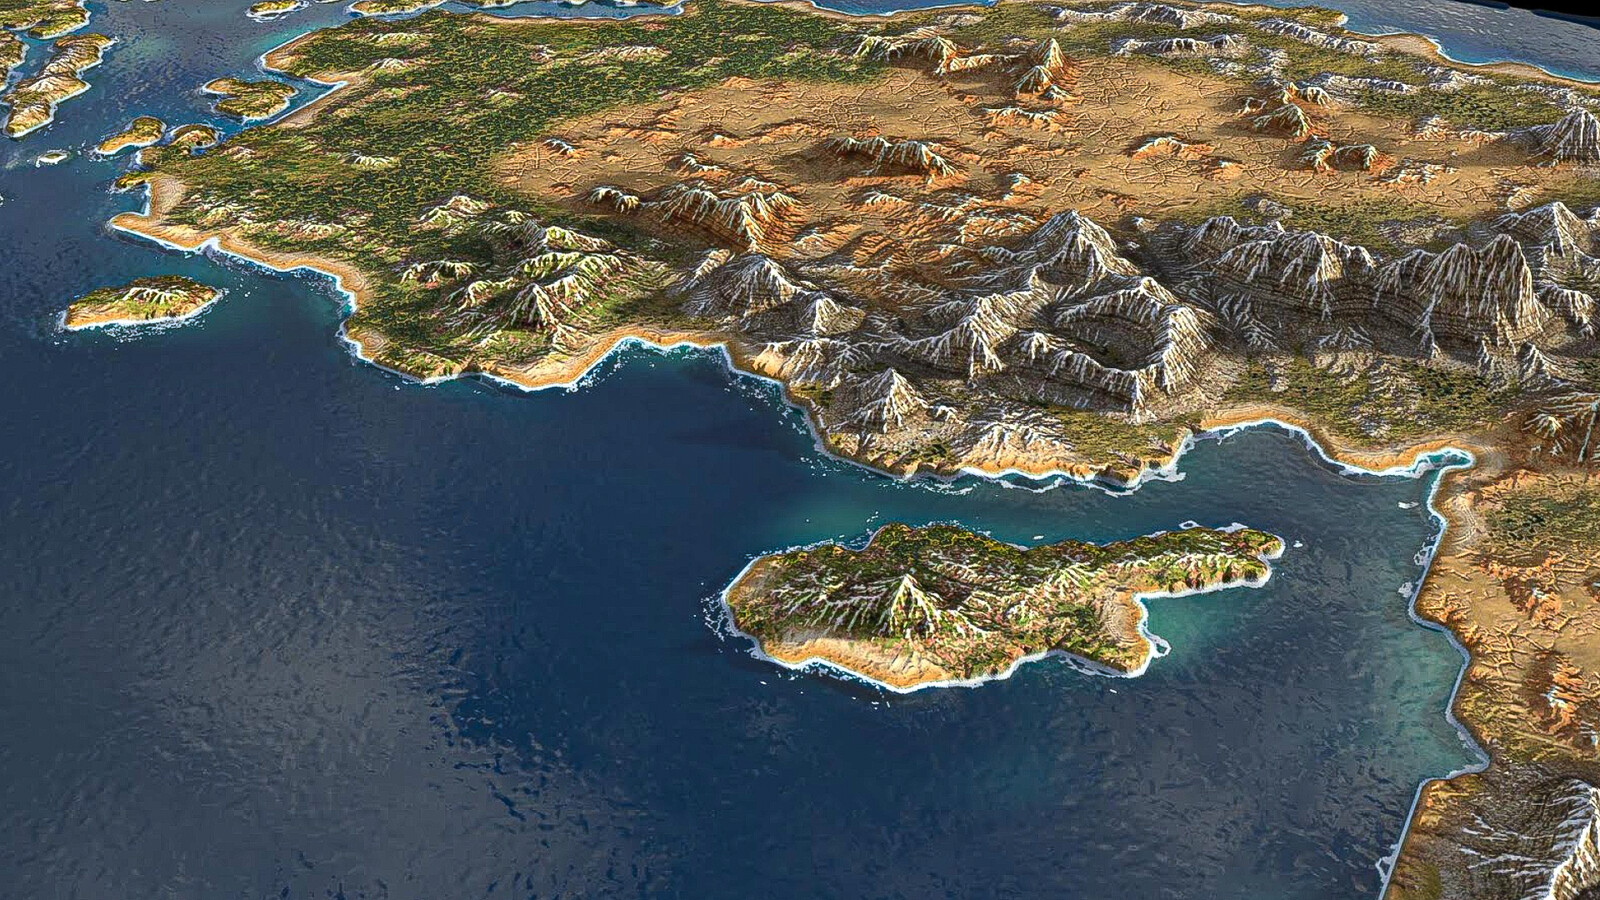 semi arid climate in sea sides and rocky desert  on center of the land, Turkey & Cyprus